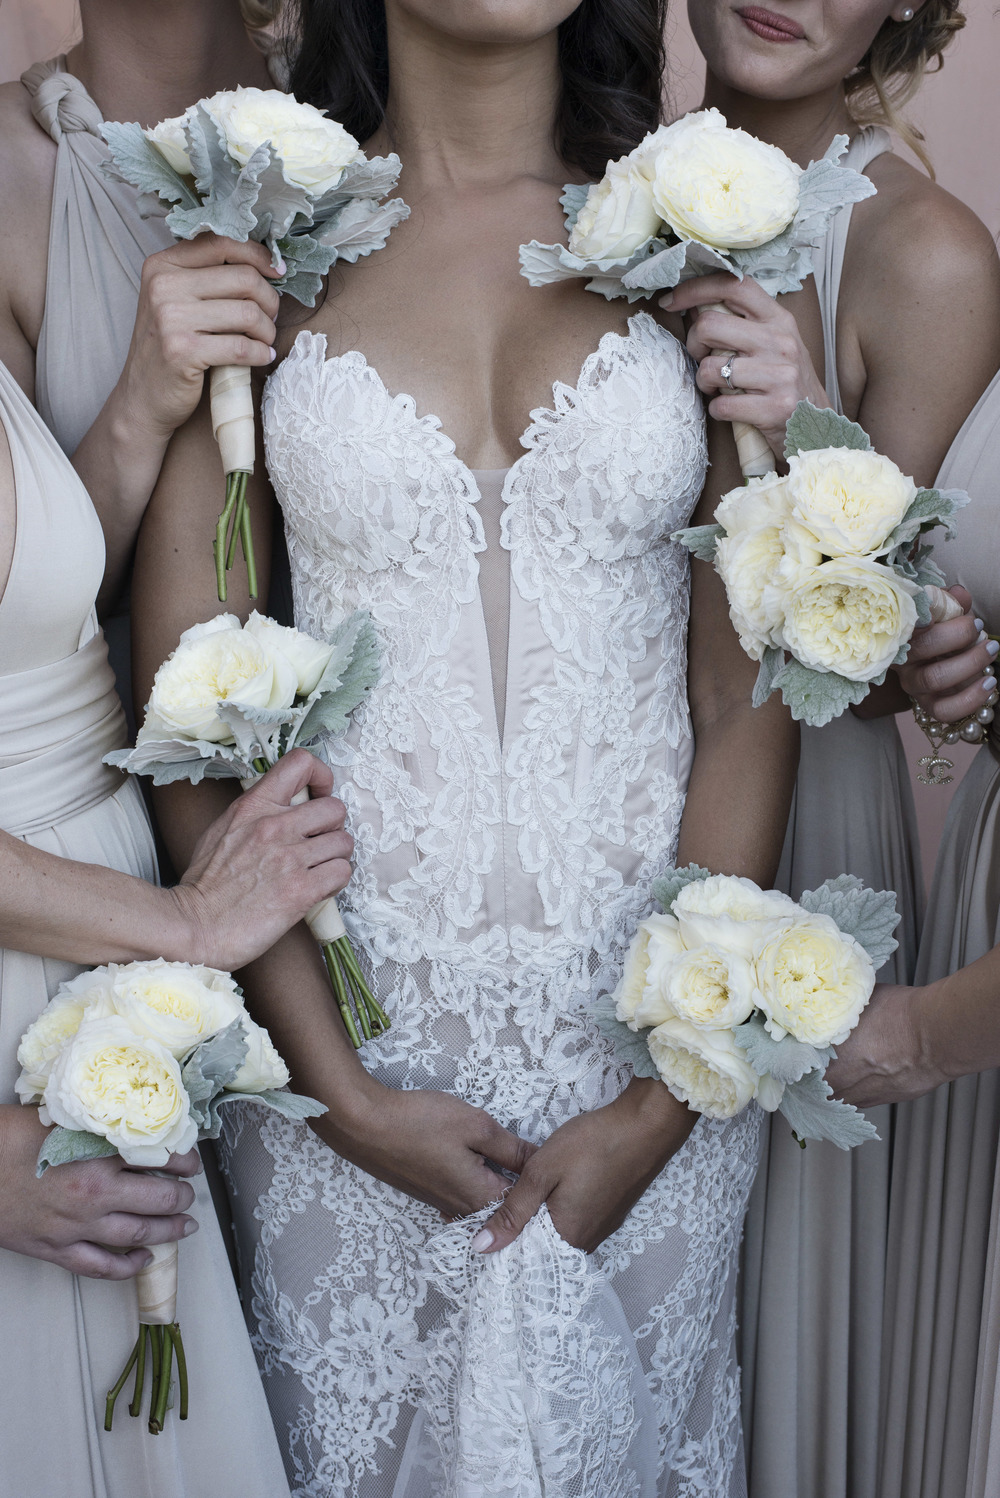 Bridesmaids carried small white ranunculus.  Bride wore a lace P'Nina Tornai Wedding Dress by P'Nina Tornai.   Vendor Credits: Las Vegas Wedding Planner:  Andrea Eppolito Events  |  Venue: The Westin Lake Las Vegas  |  Floral & Decor:  Flora Couture |  Photography:  Altf Photography